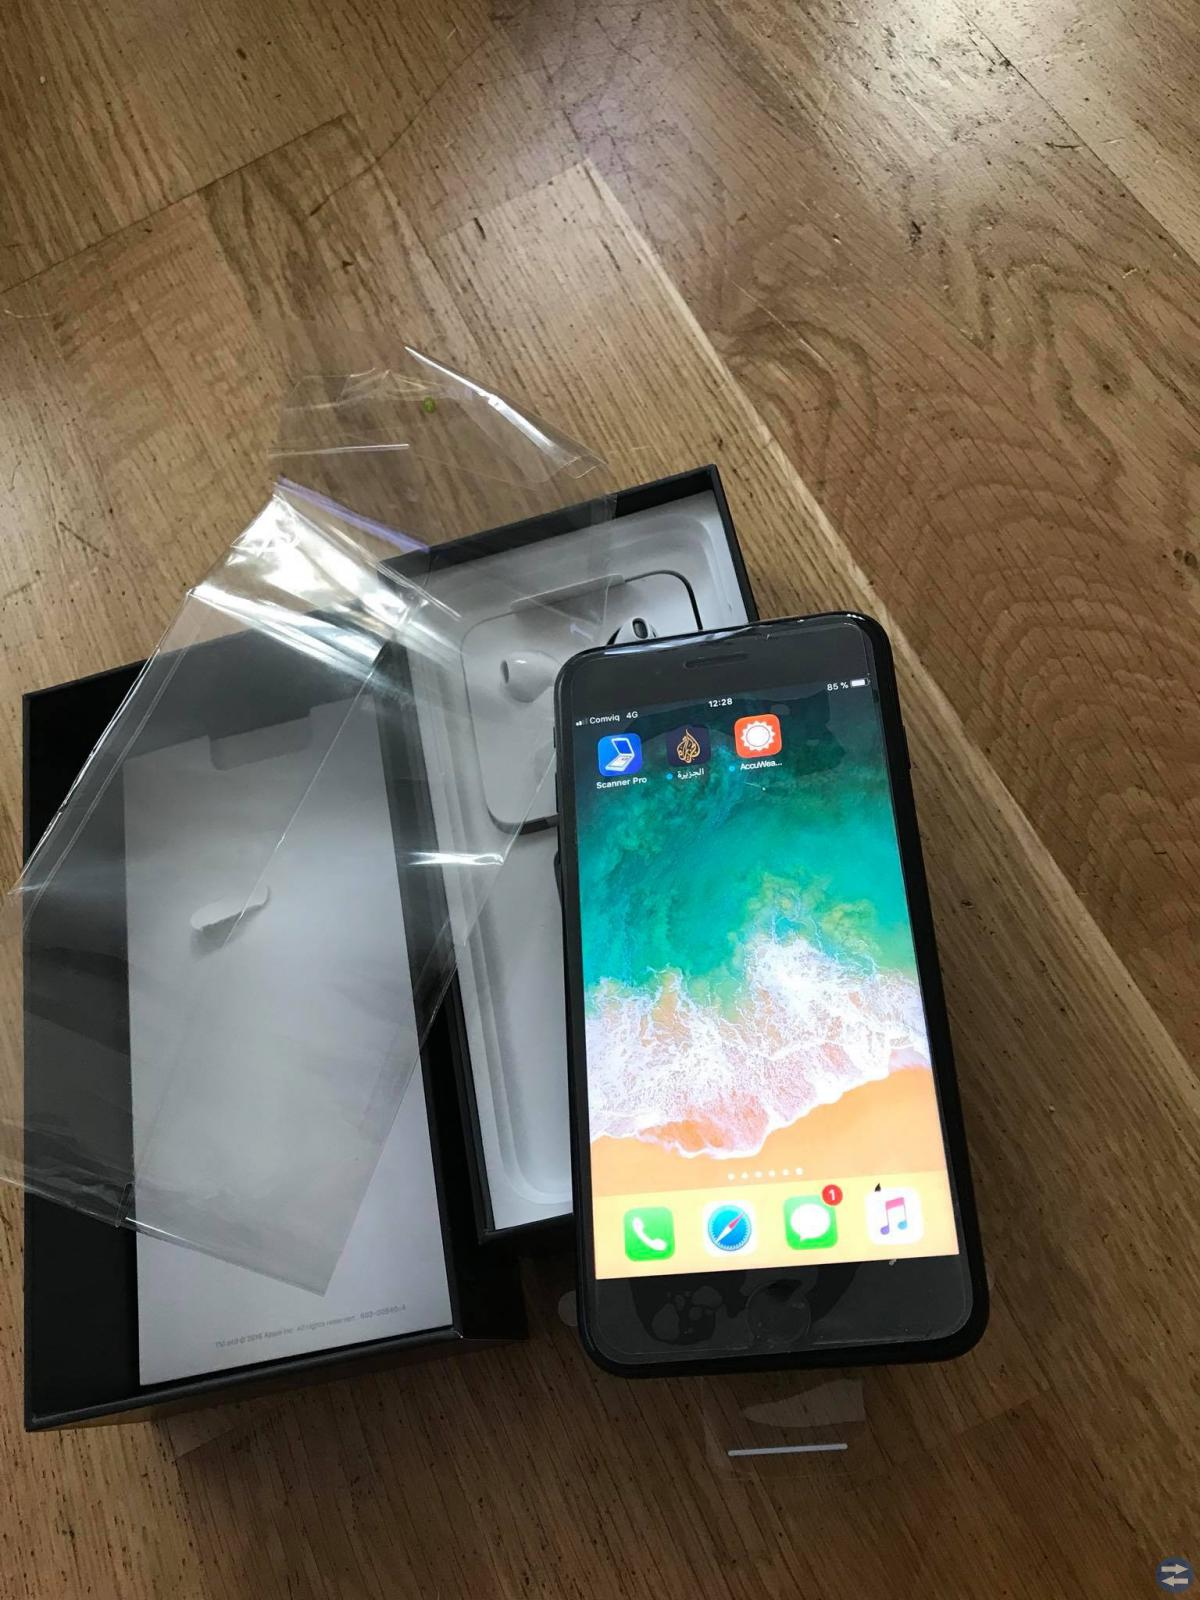 Iphone 7 plus 128 GB jet black nästan ny